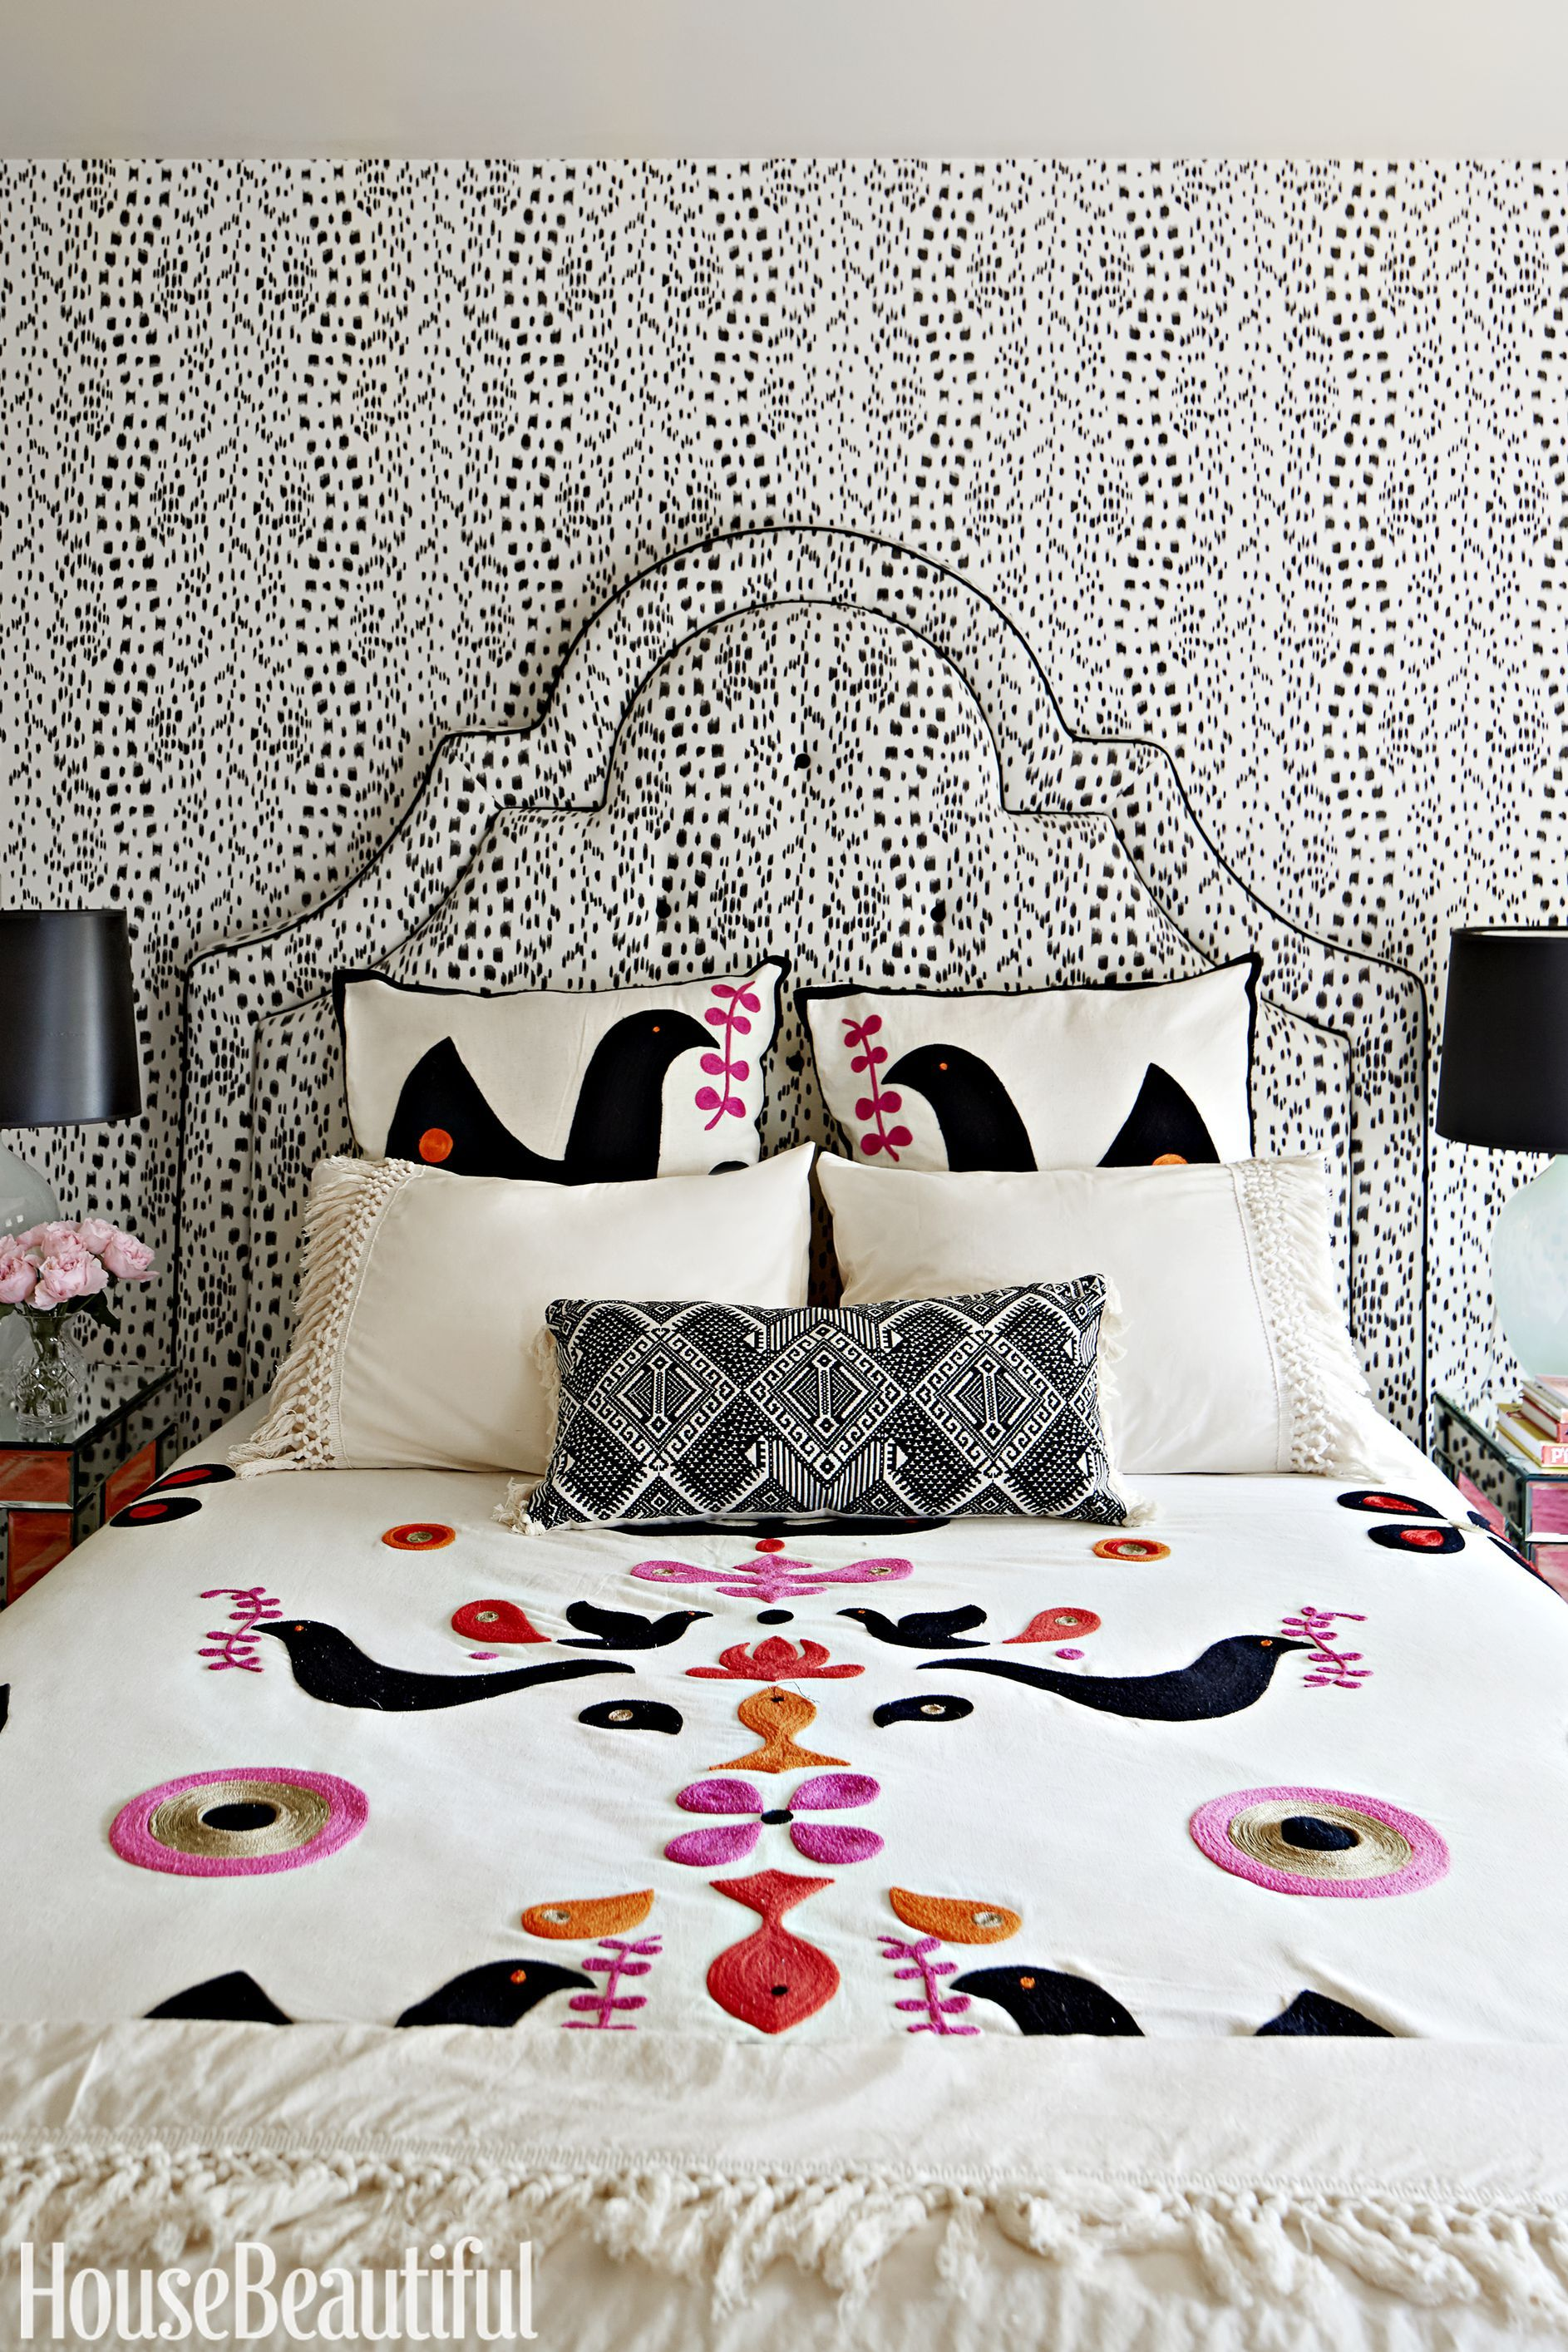 Black And White Bedroom Ideas 15 Beautiful Black And White Bedroom Ideas Black And White Decor